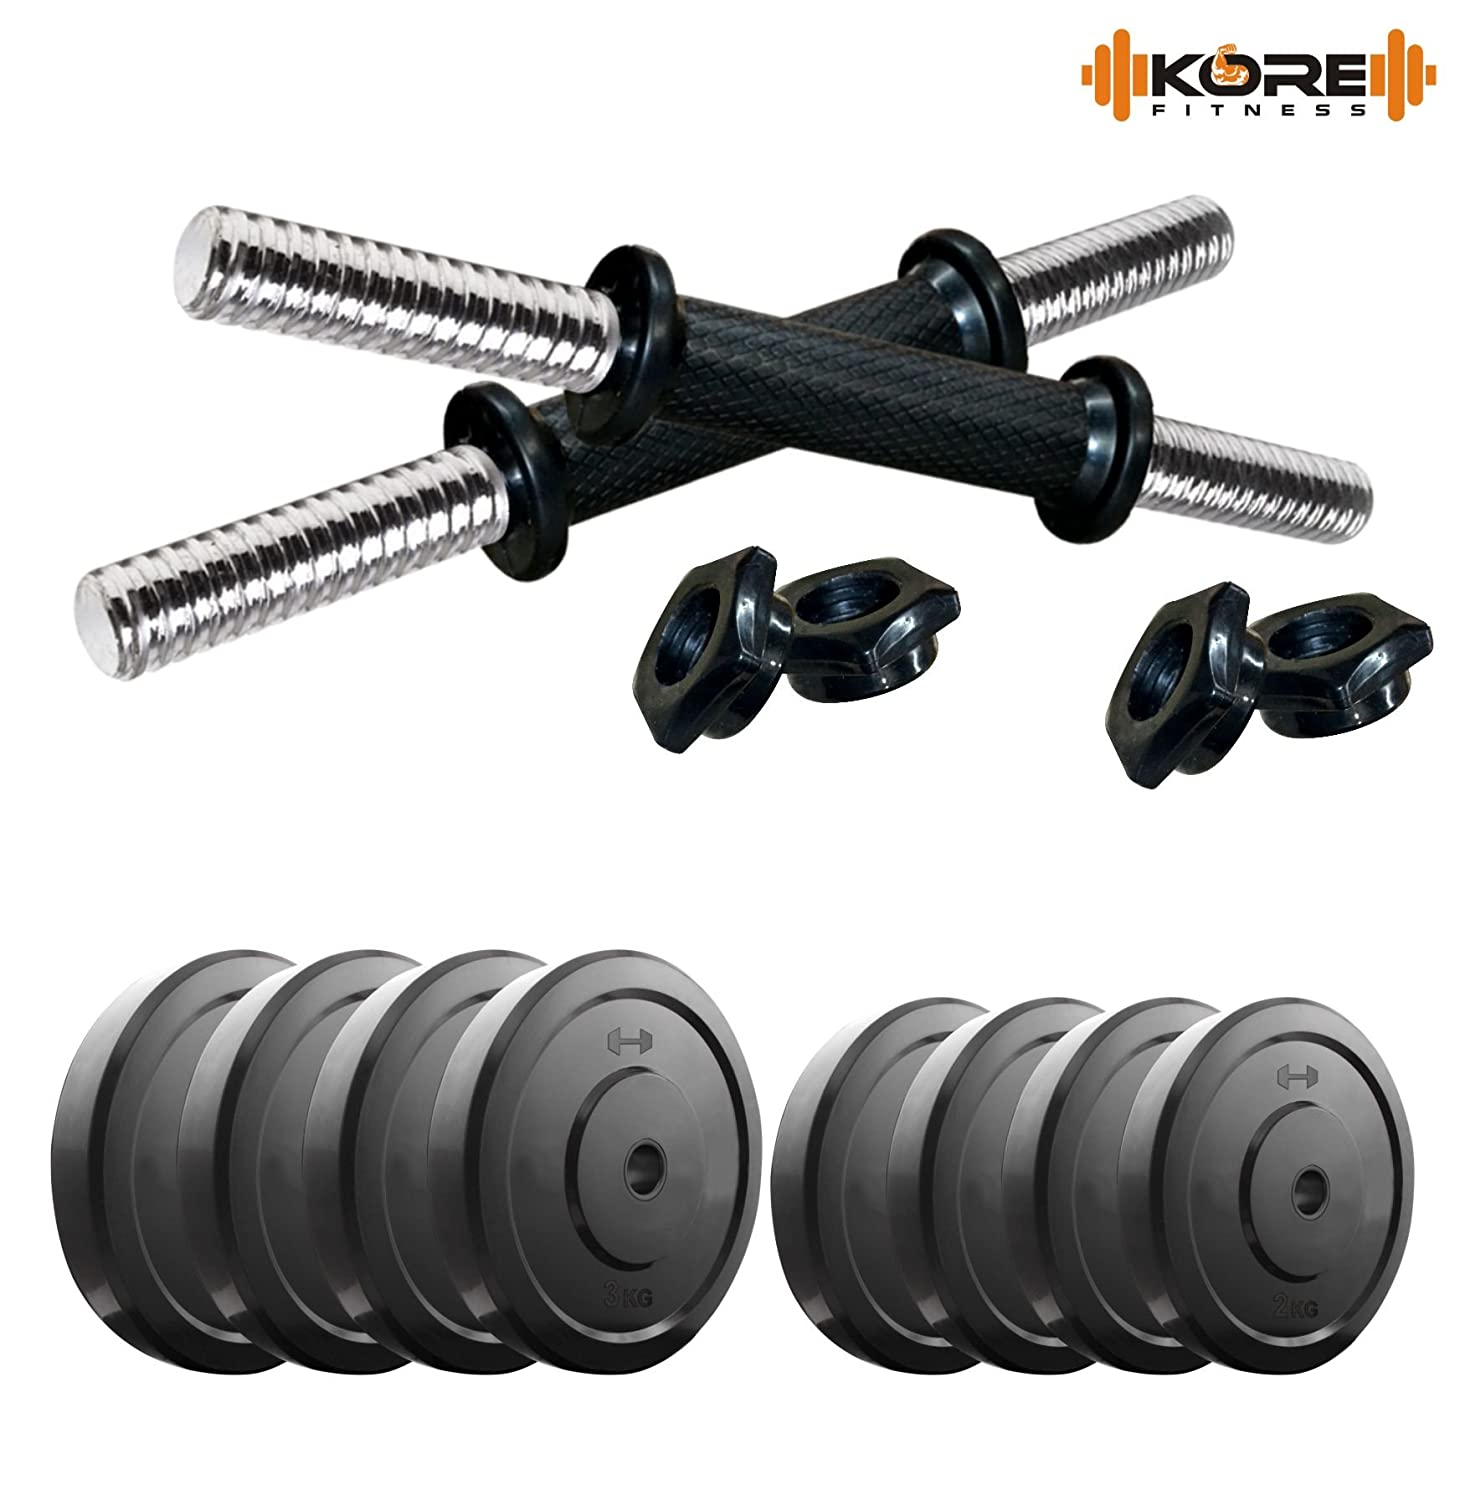 Sports Essentials Under @ Rs.999 By Amazon | Kore DM-20KG COMBO16 Dumbbells Kit @ Rs.964